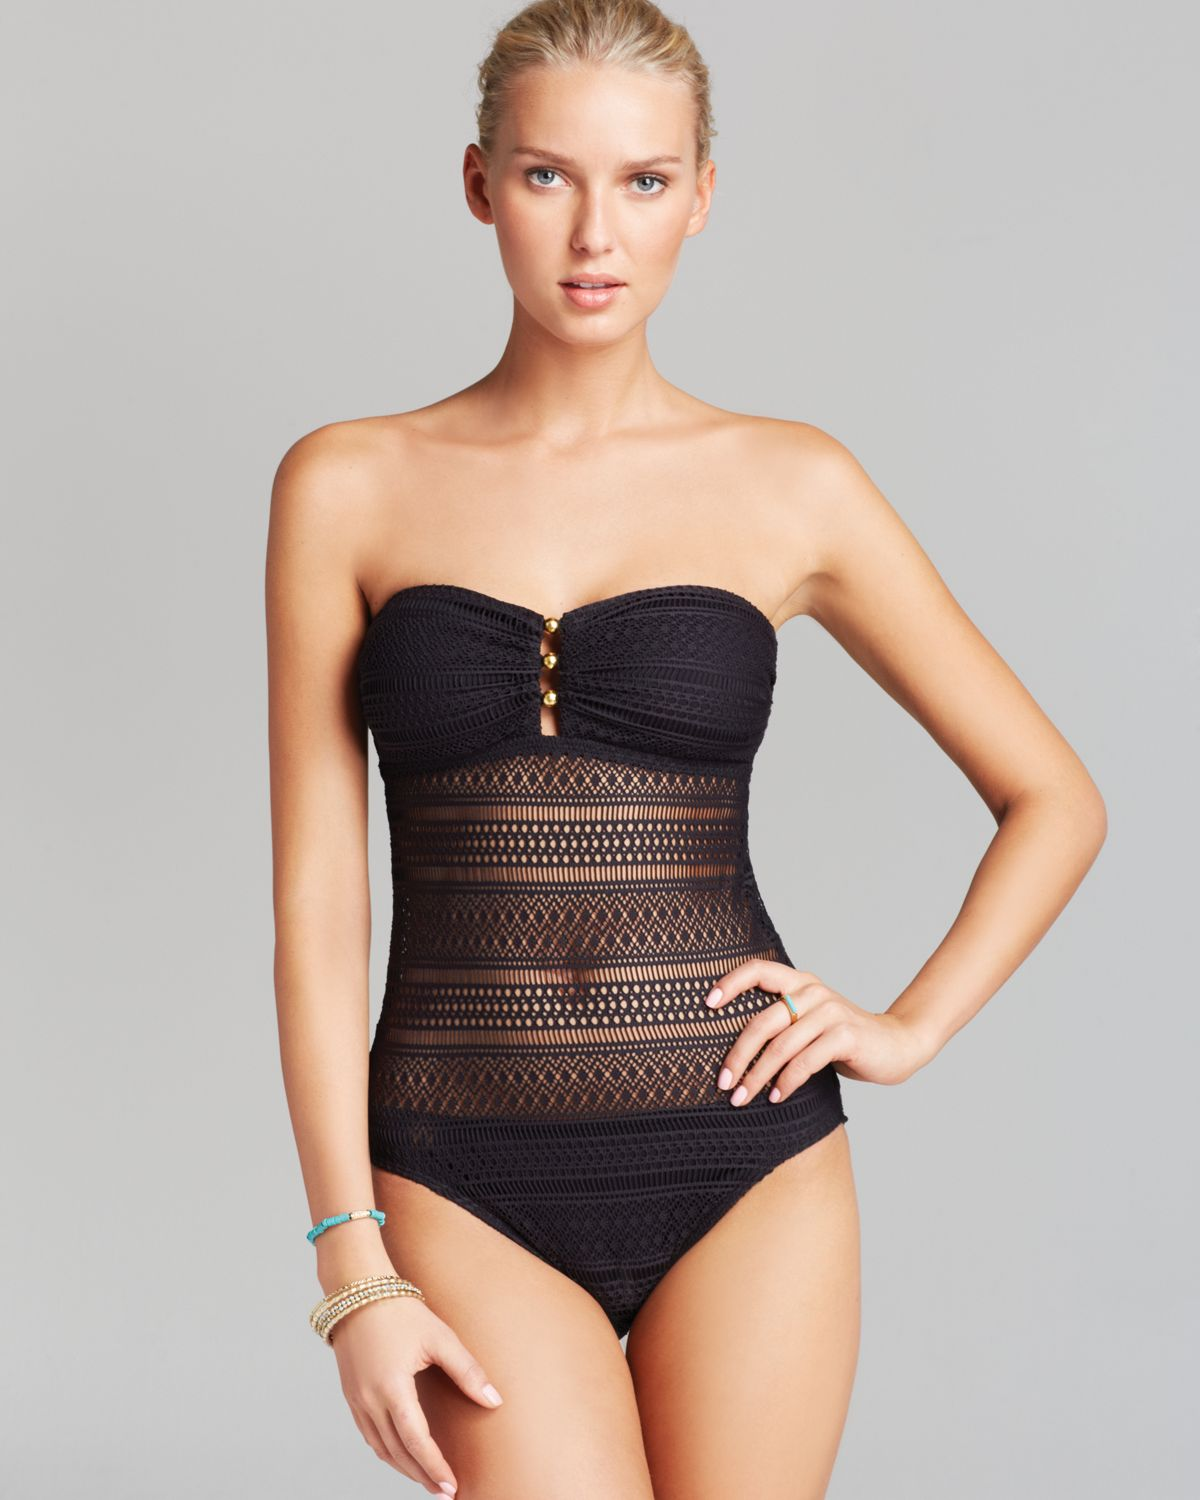 sheer one piece swimsuits gallery #3